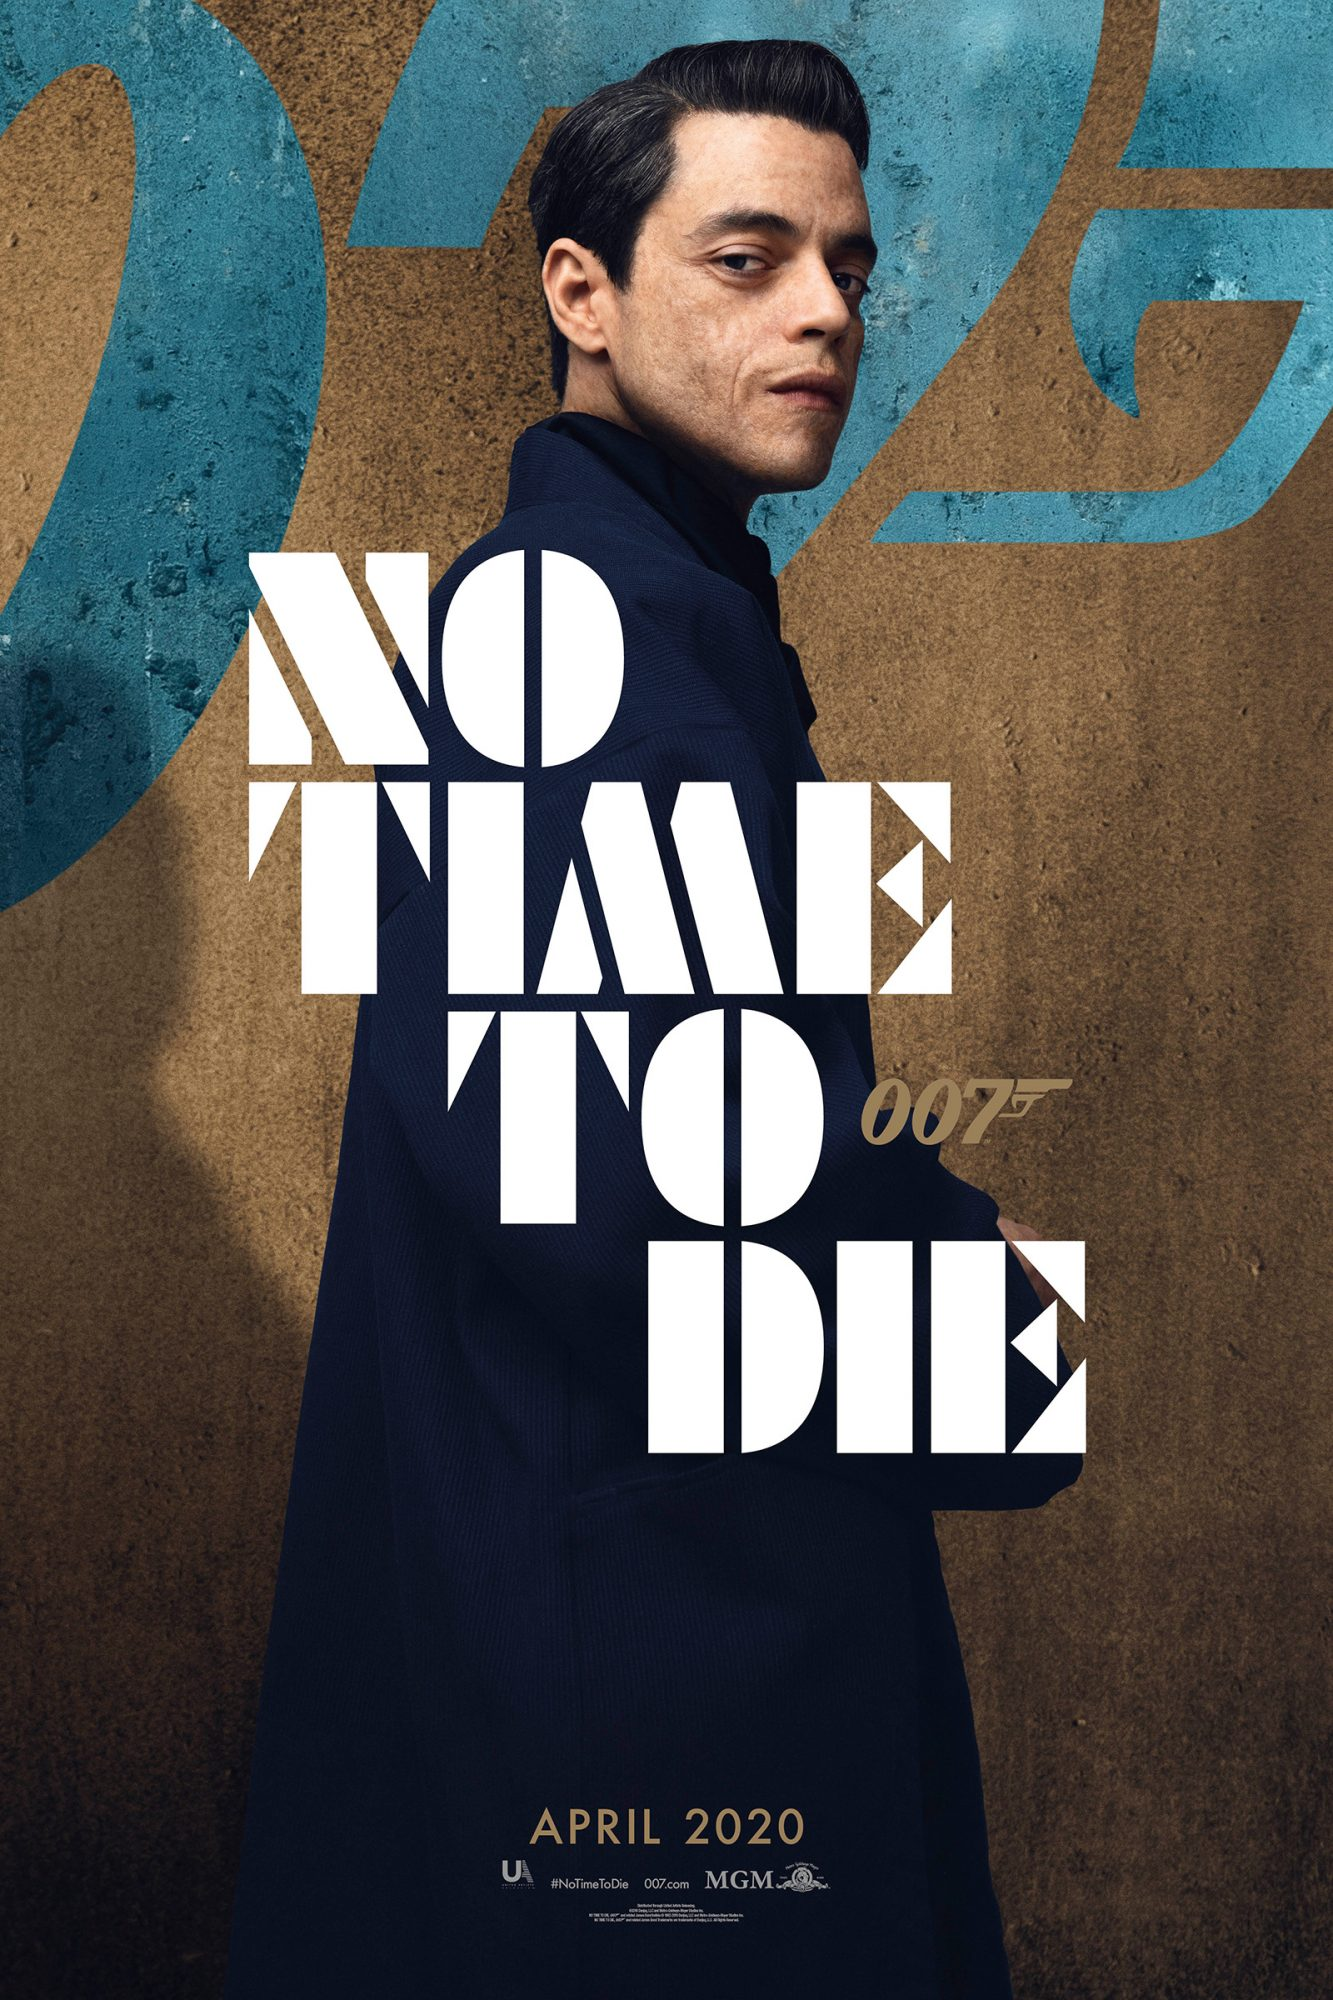 Rami Malek - No Time To Die James Bond